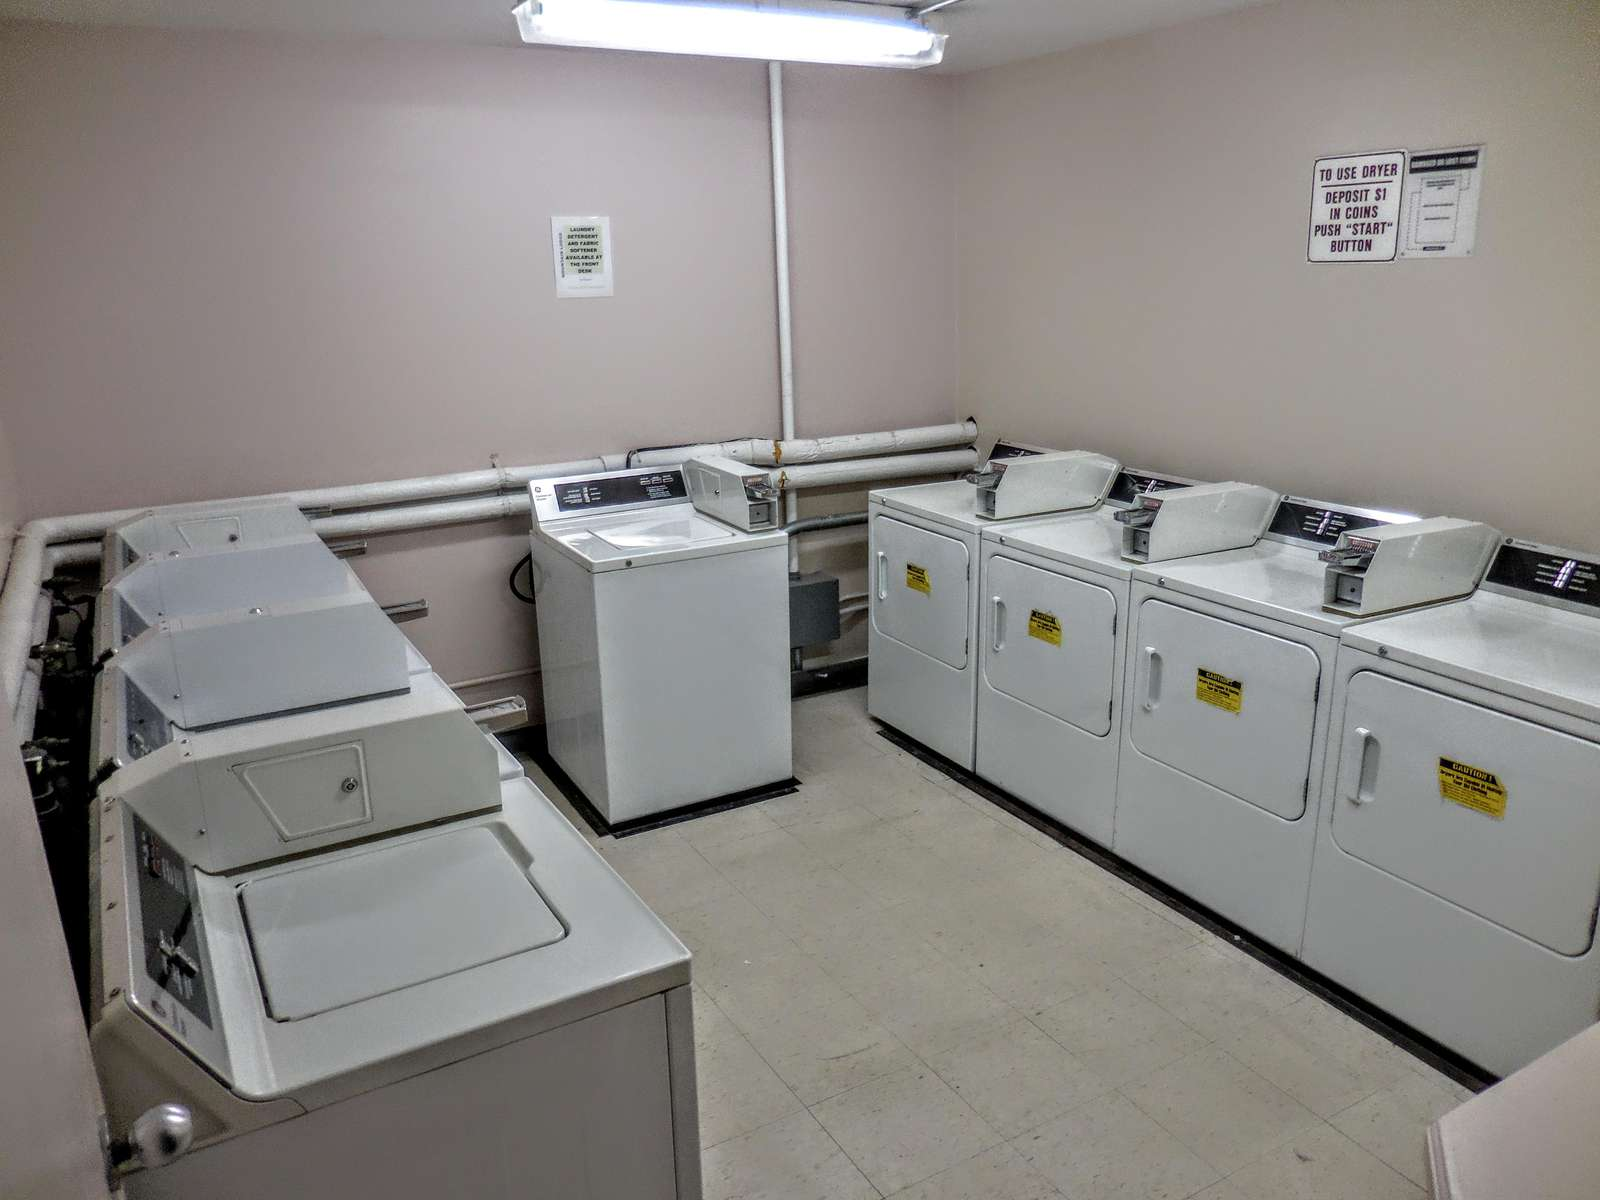 Community (coins) Washer/Dryer is down the hall from ML332